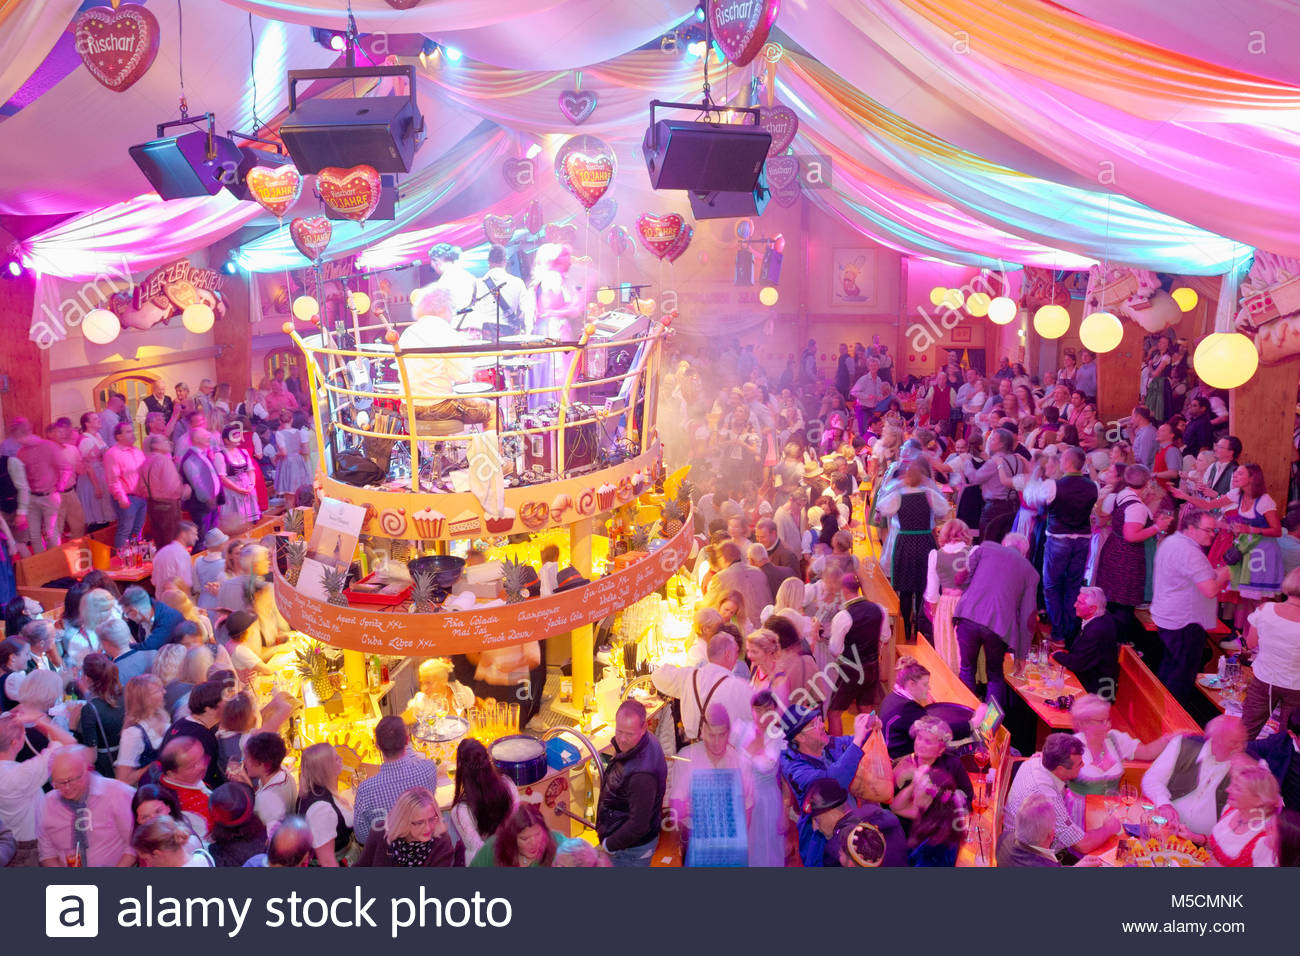 Oktoberfest beer wine tent party celebration crowd & Oktoberfest beer wine tent party celebration crowd Stock Photo ...